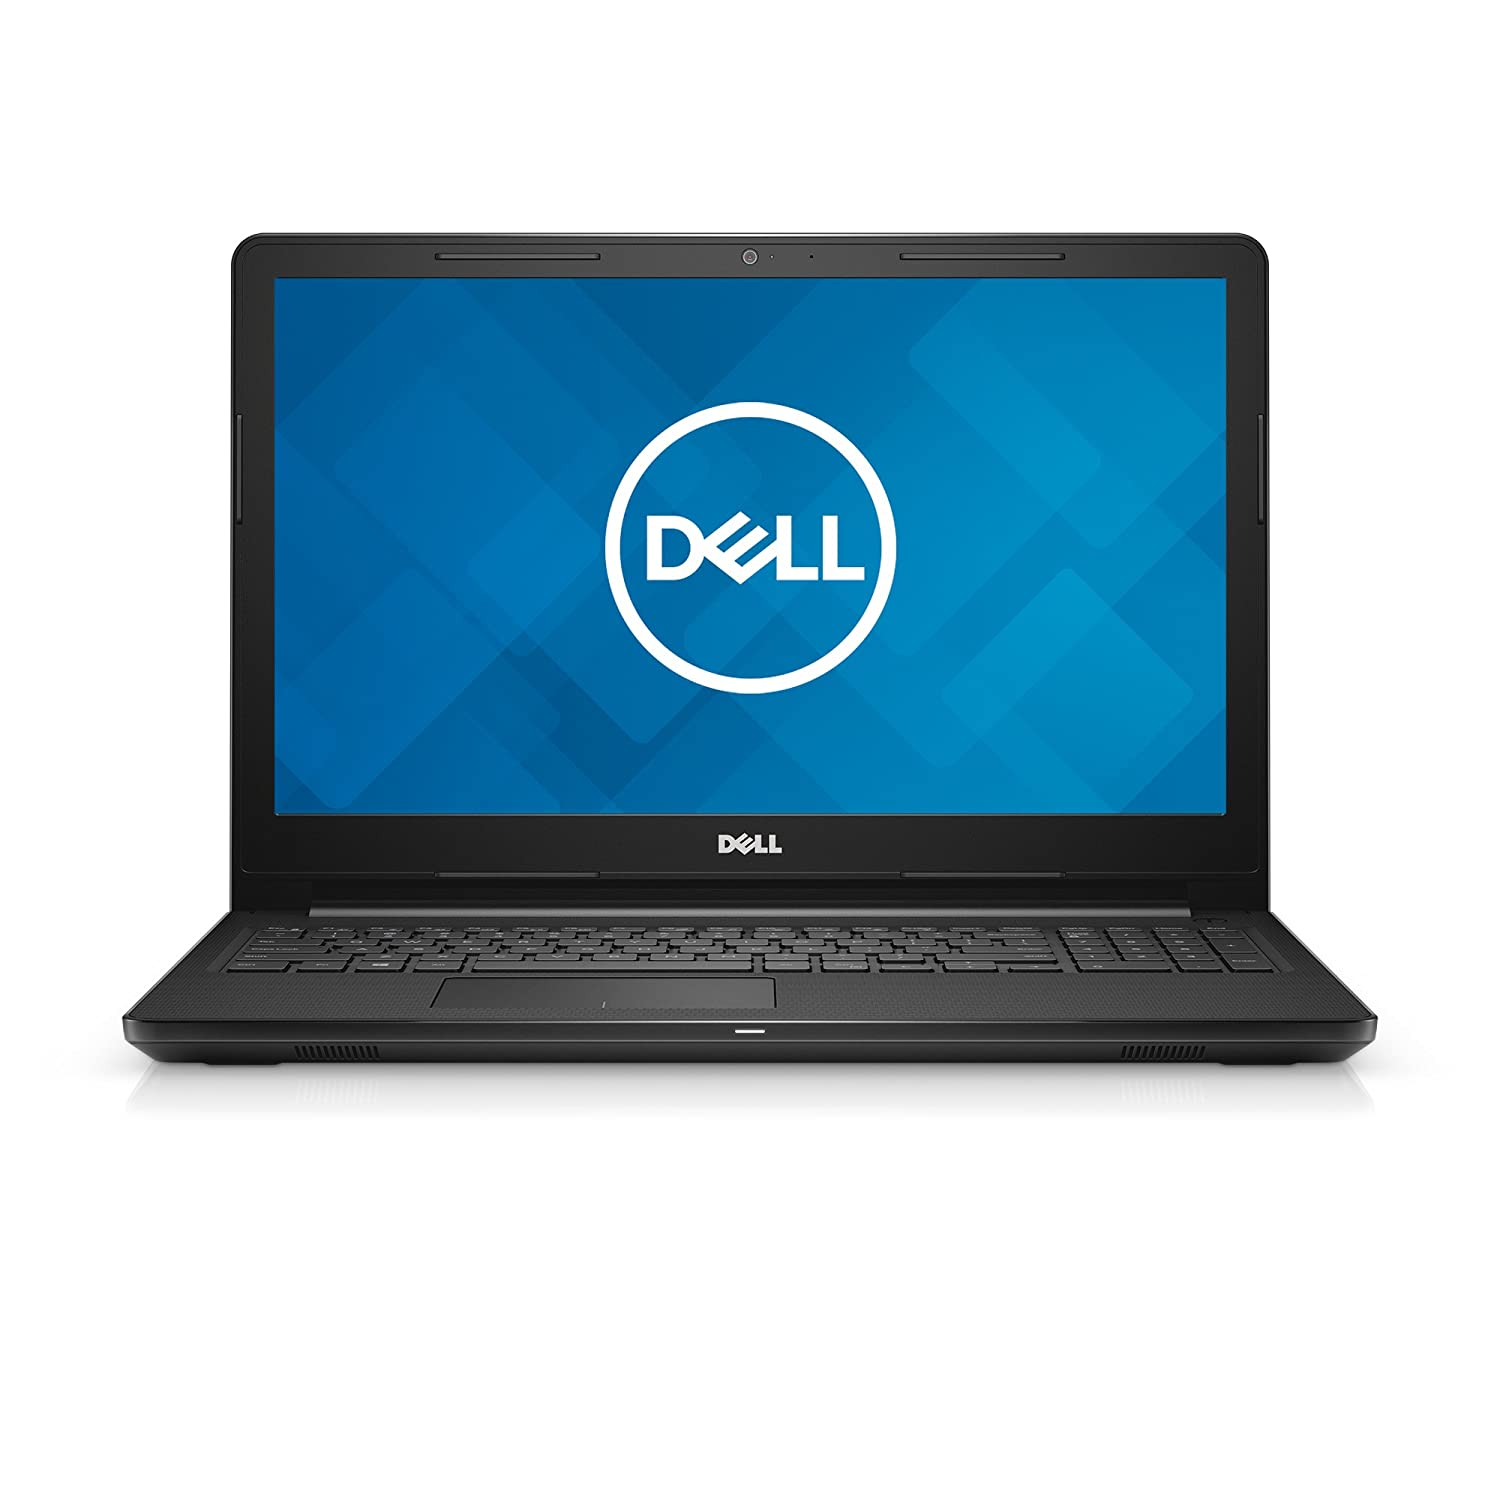 Dell i3567-5185BLK-PUS Review